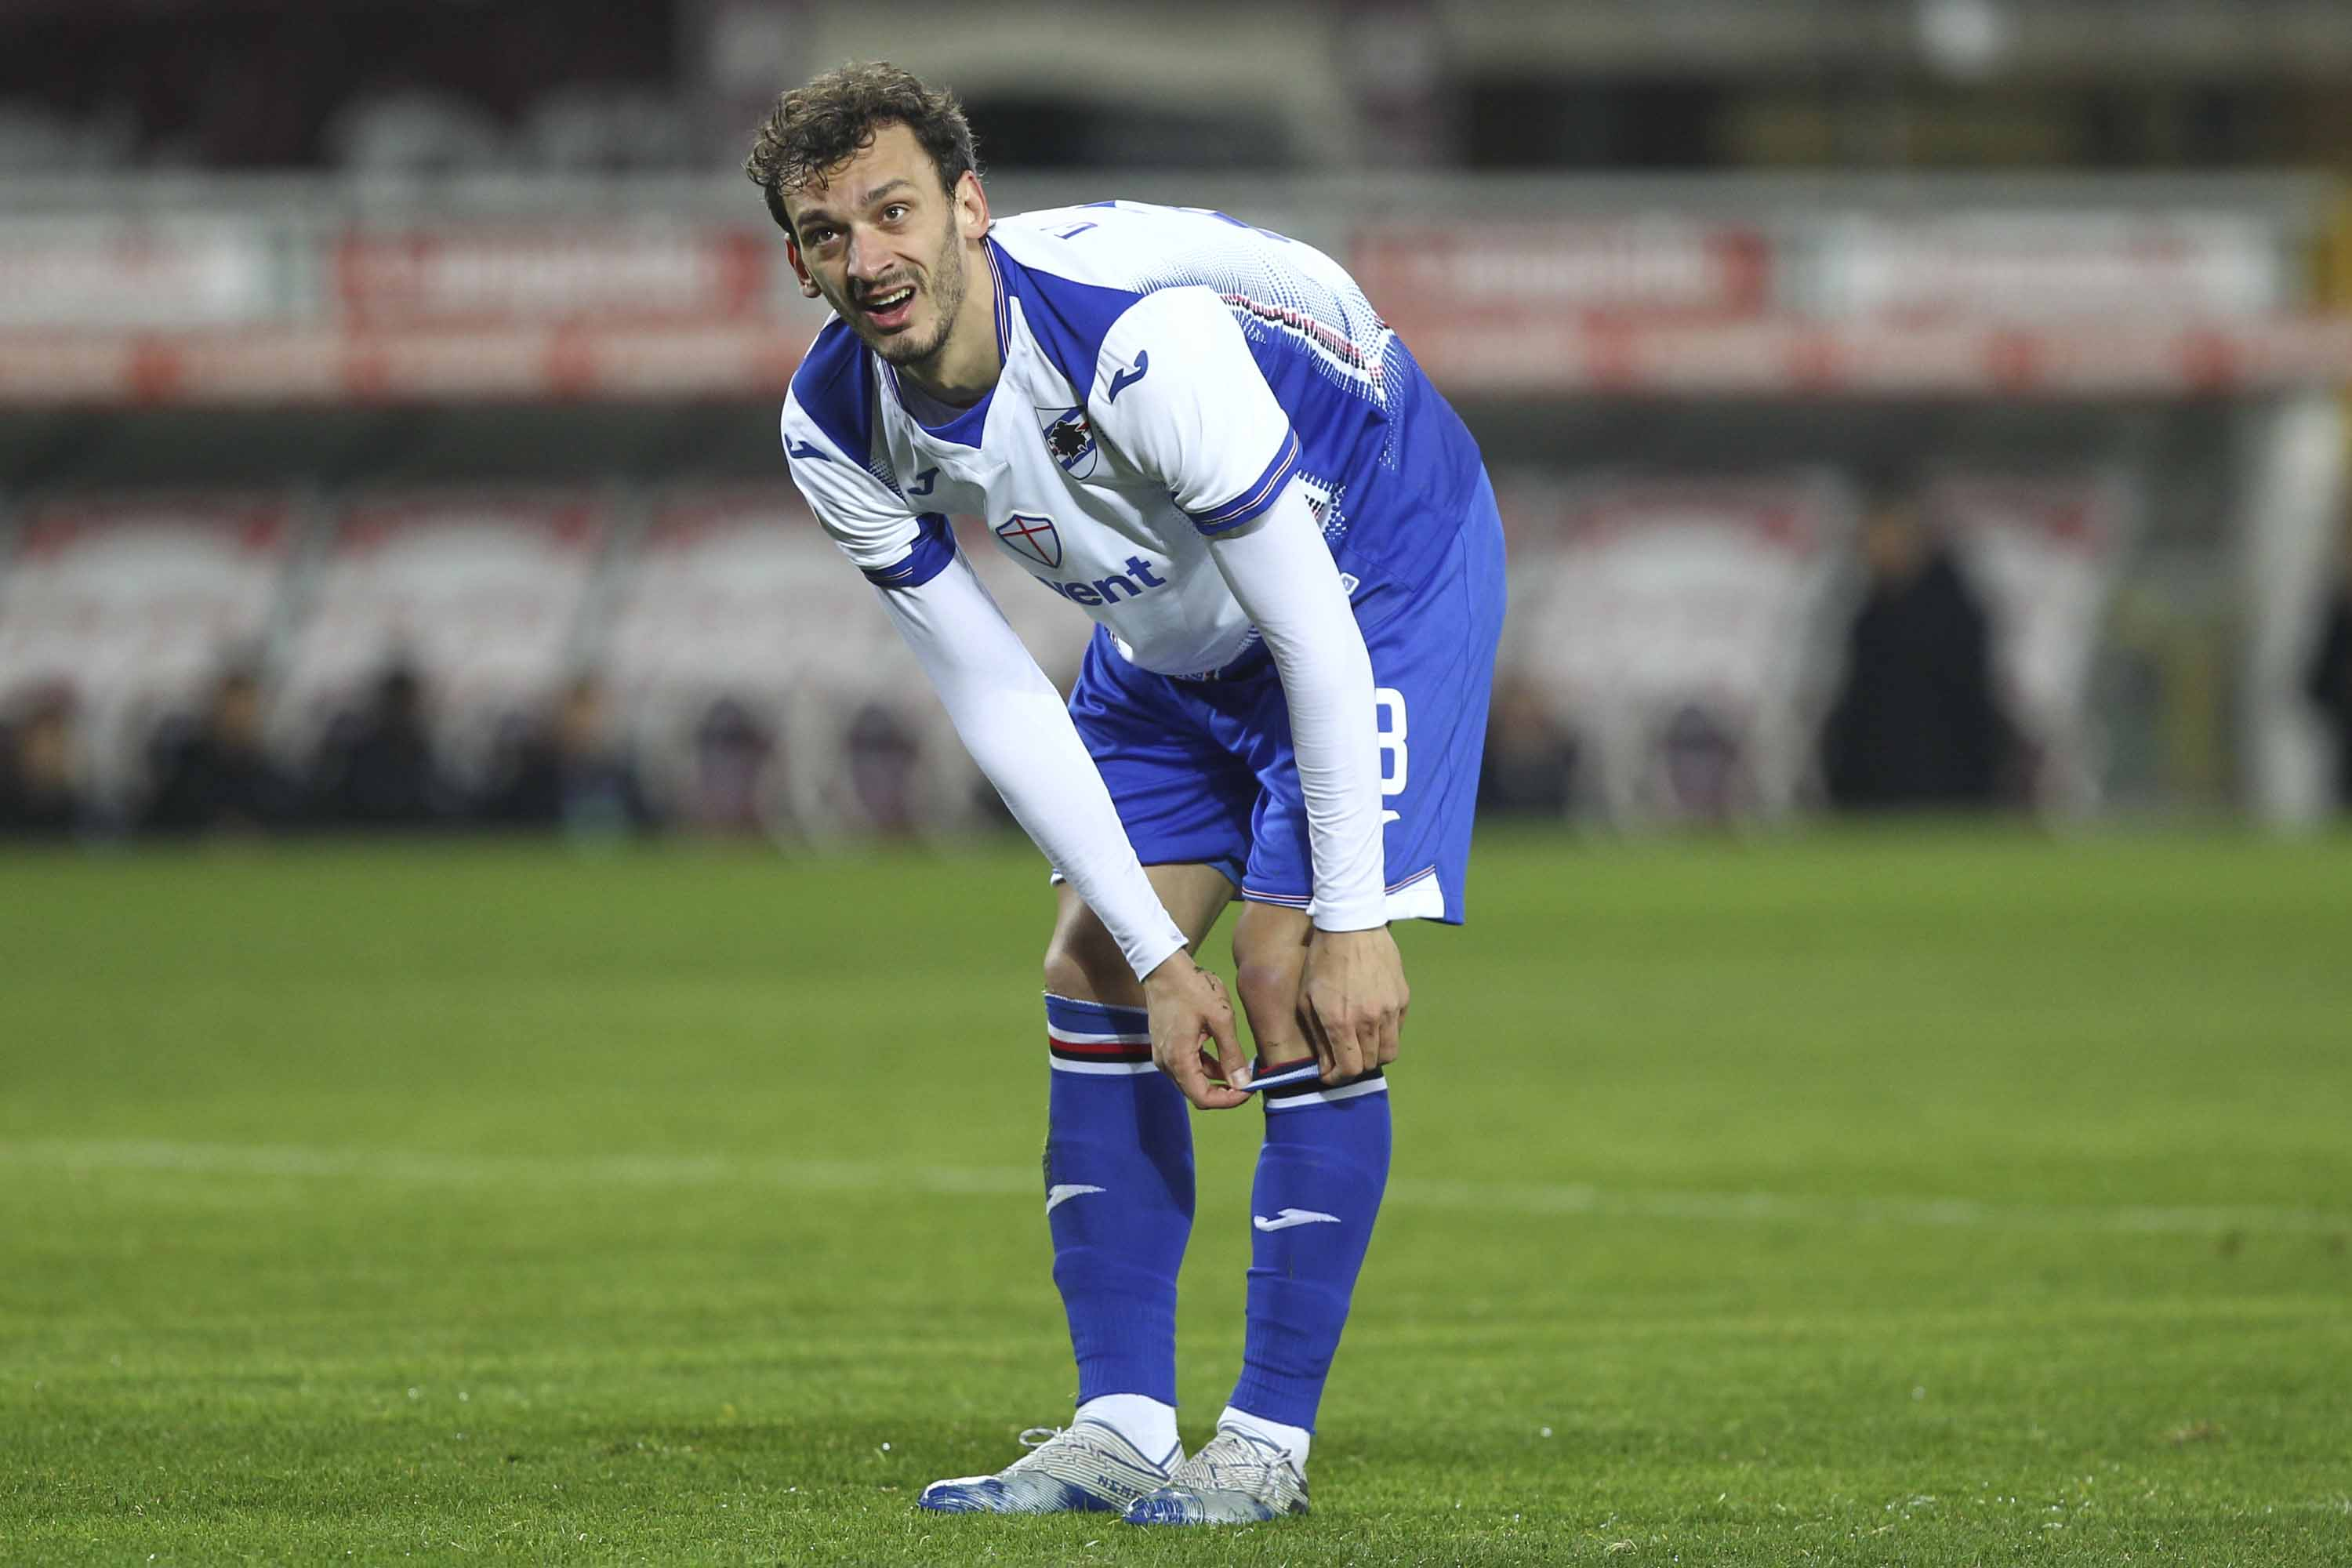 Manolo Gabbiadini of UC Sampdoria is pictured on the pitch during a Serie A football match in Turin, Italy, on February 8